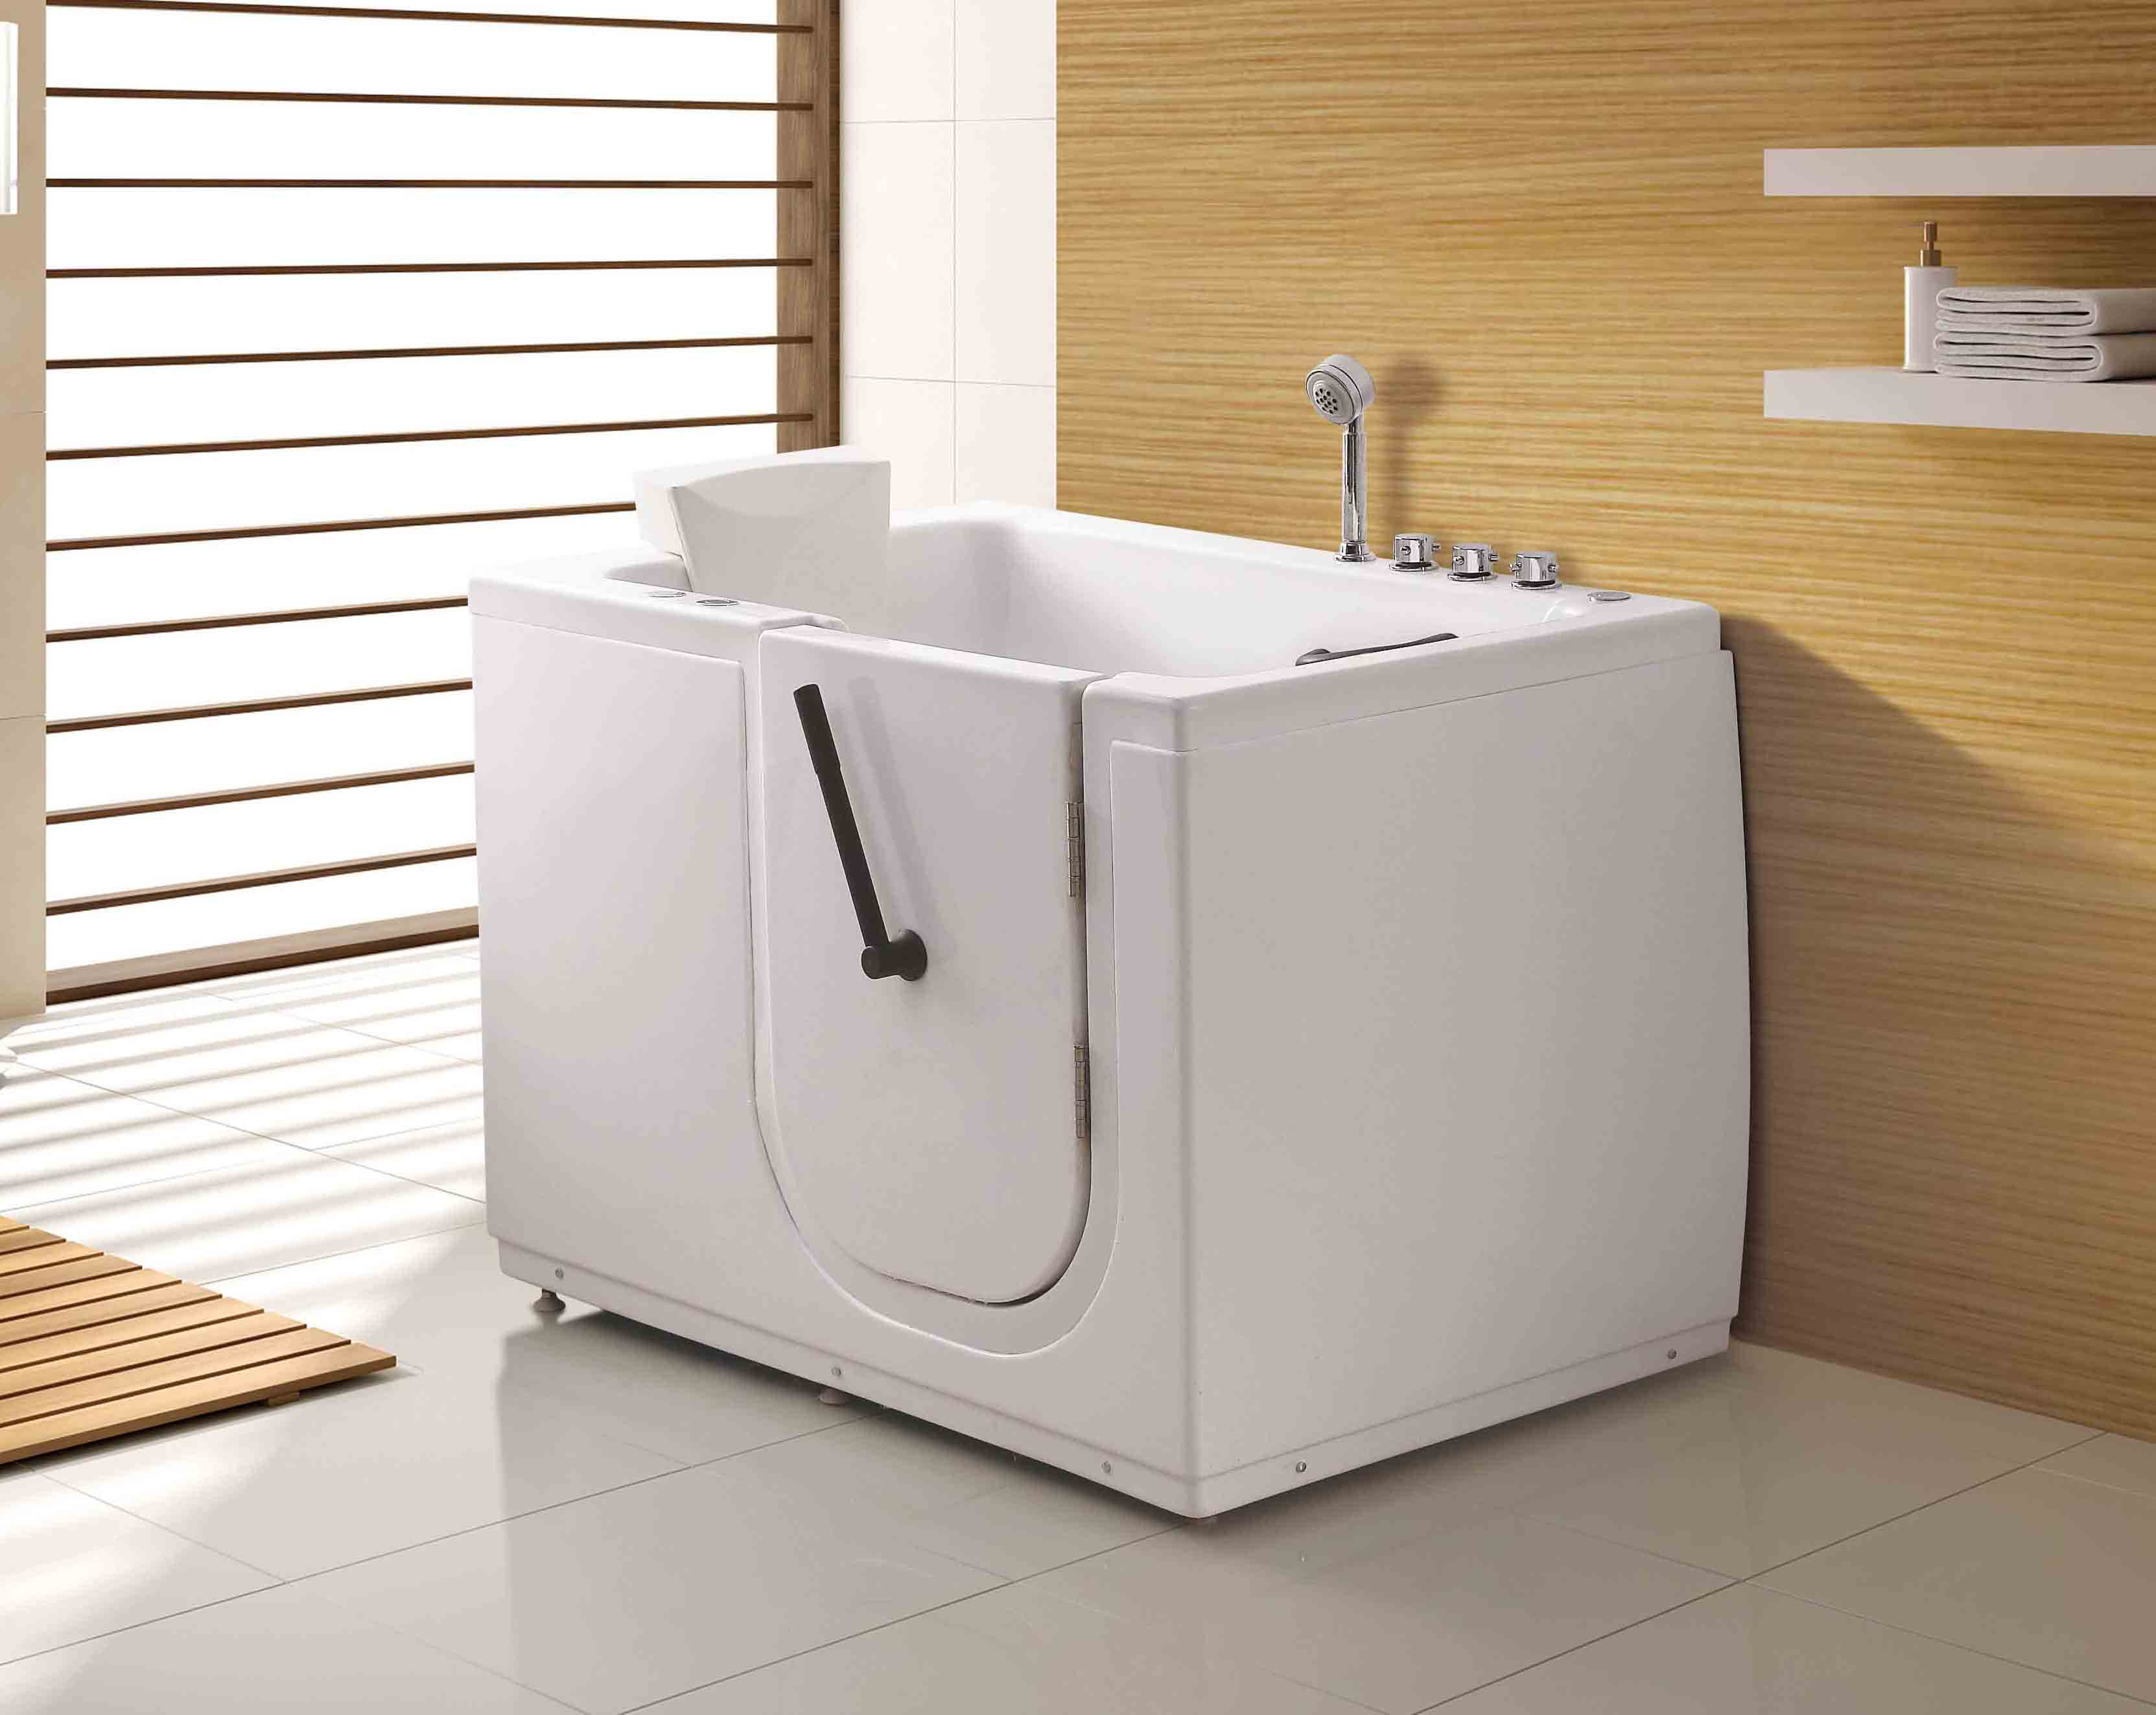 Portable Walk In Bathtub, Portable Walk In Bathtub Suppliers And  Manufacturers At Alibaba.com